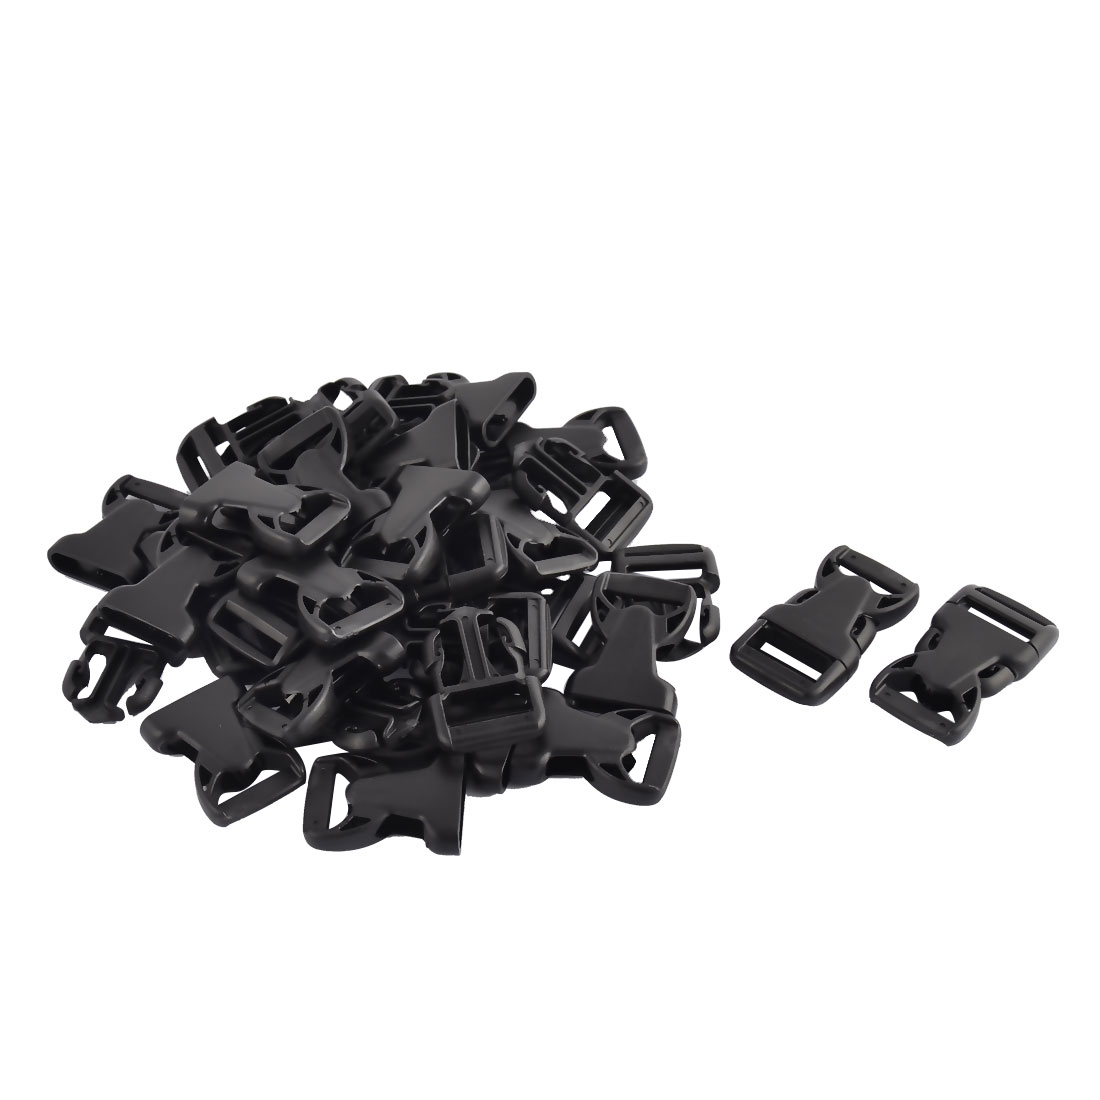 Suitcase Backpack Strap Plastic Side Quick Release Buckles Black 20mm 20pcs